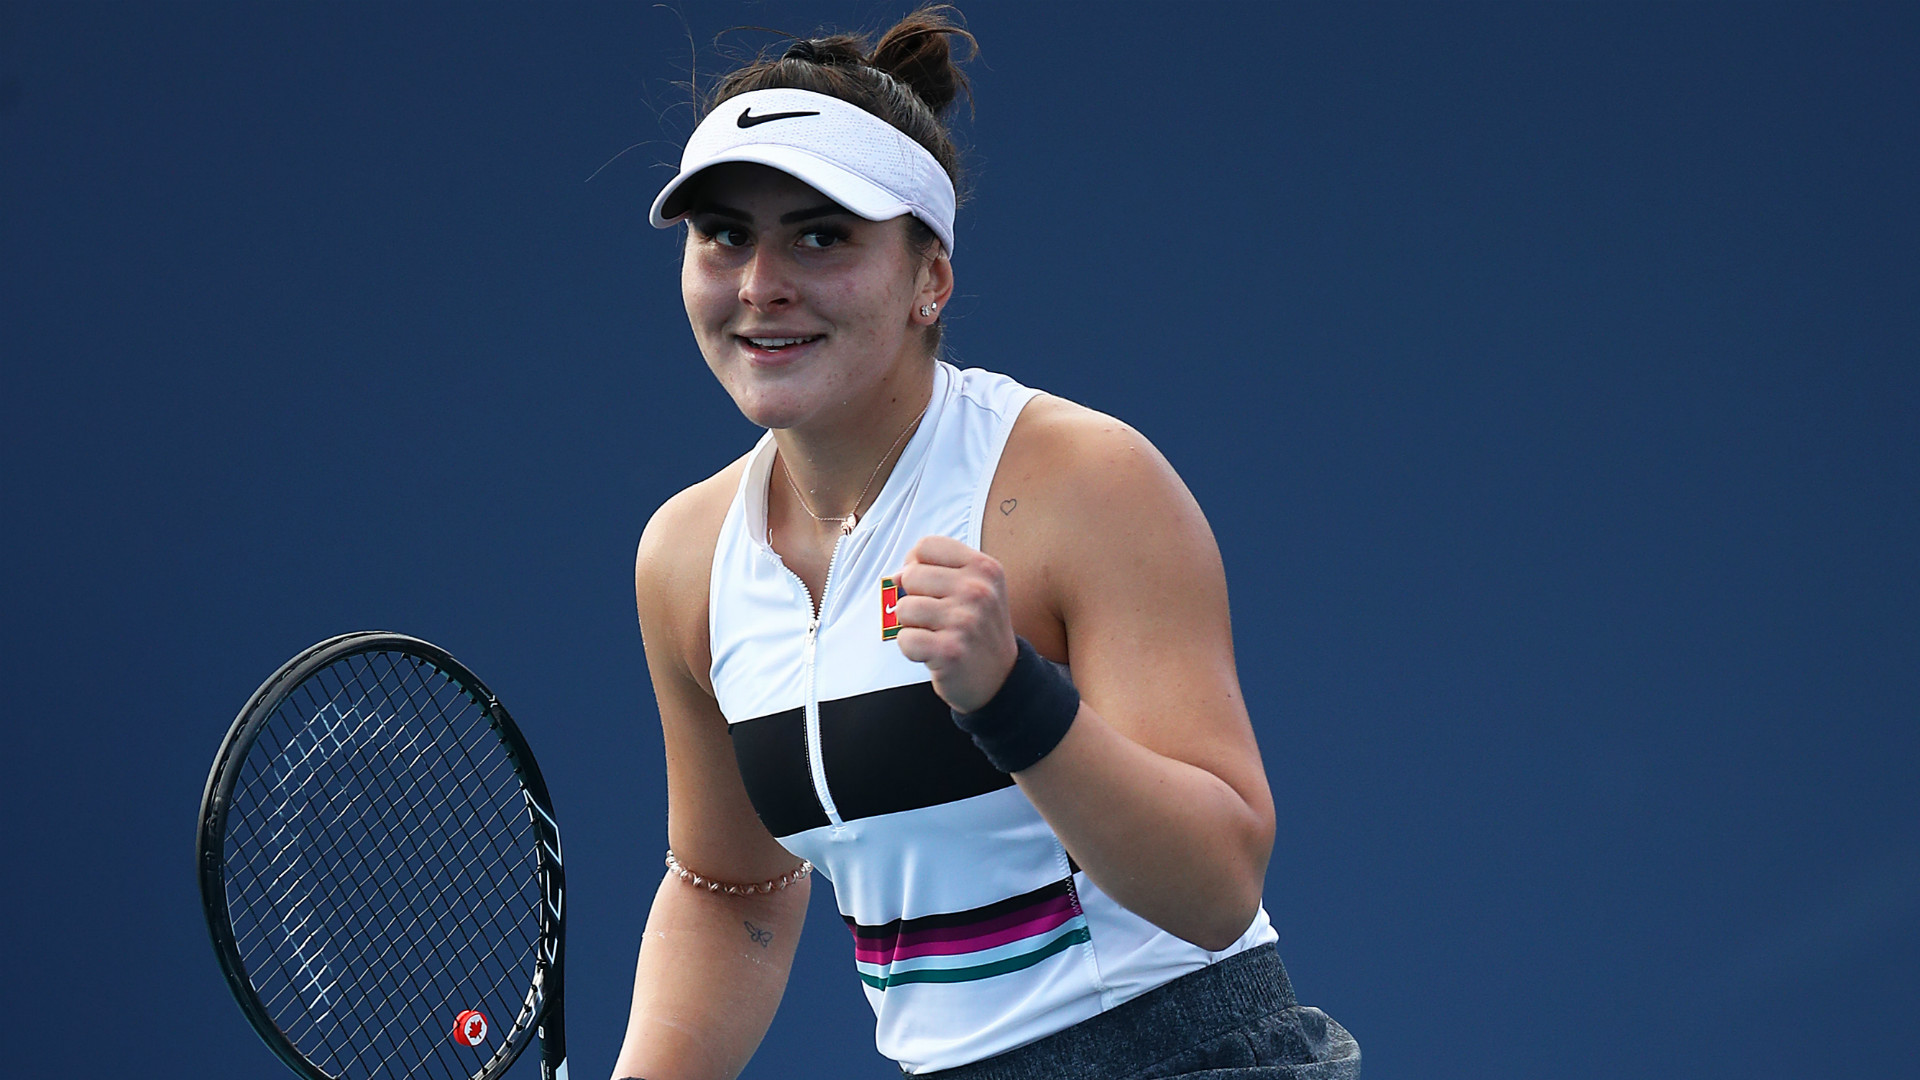 Miami Open Bianca Andreescu Eases Into Third Round